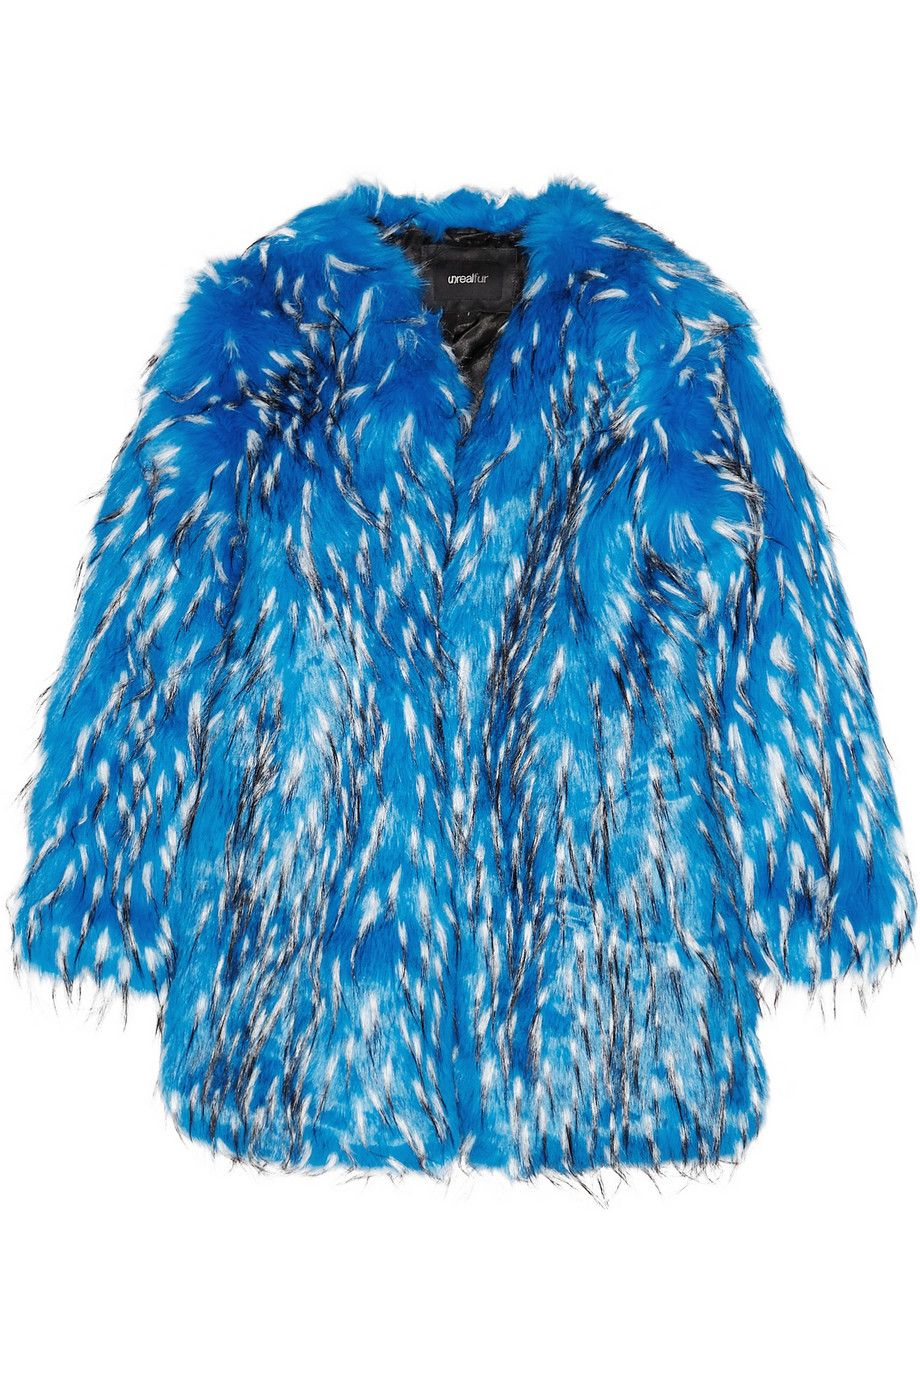 Faux Fur Don T Care That It Conjures Images Of The Blue Guy From